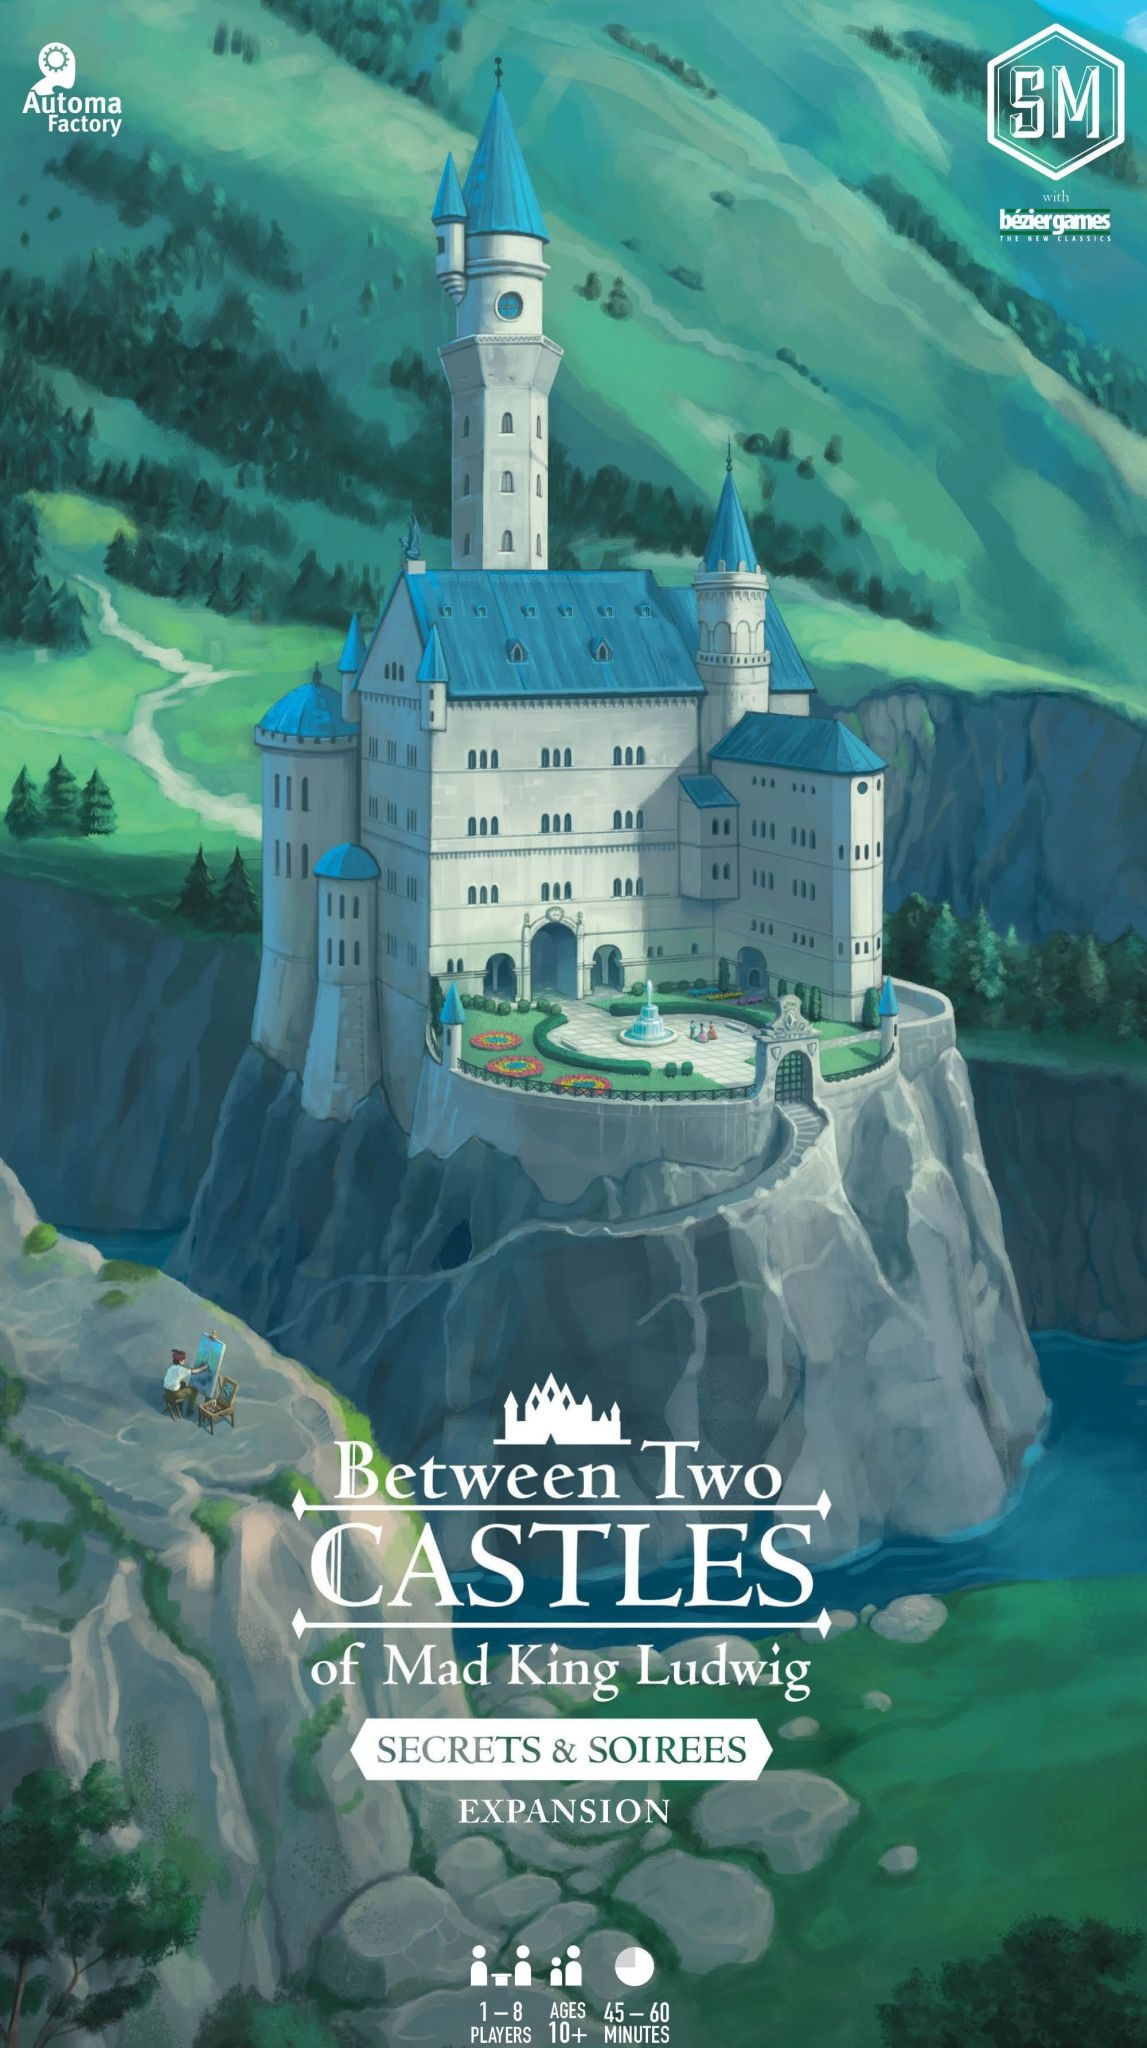 Between Two Castles of Mad King Ludwig: Secrets & Soirees Exp.